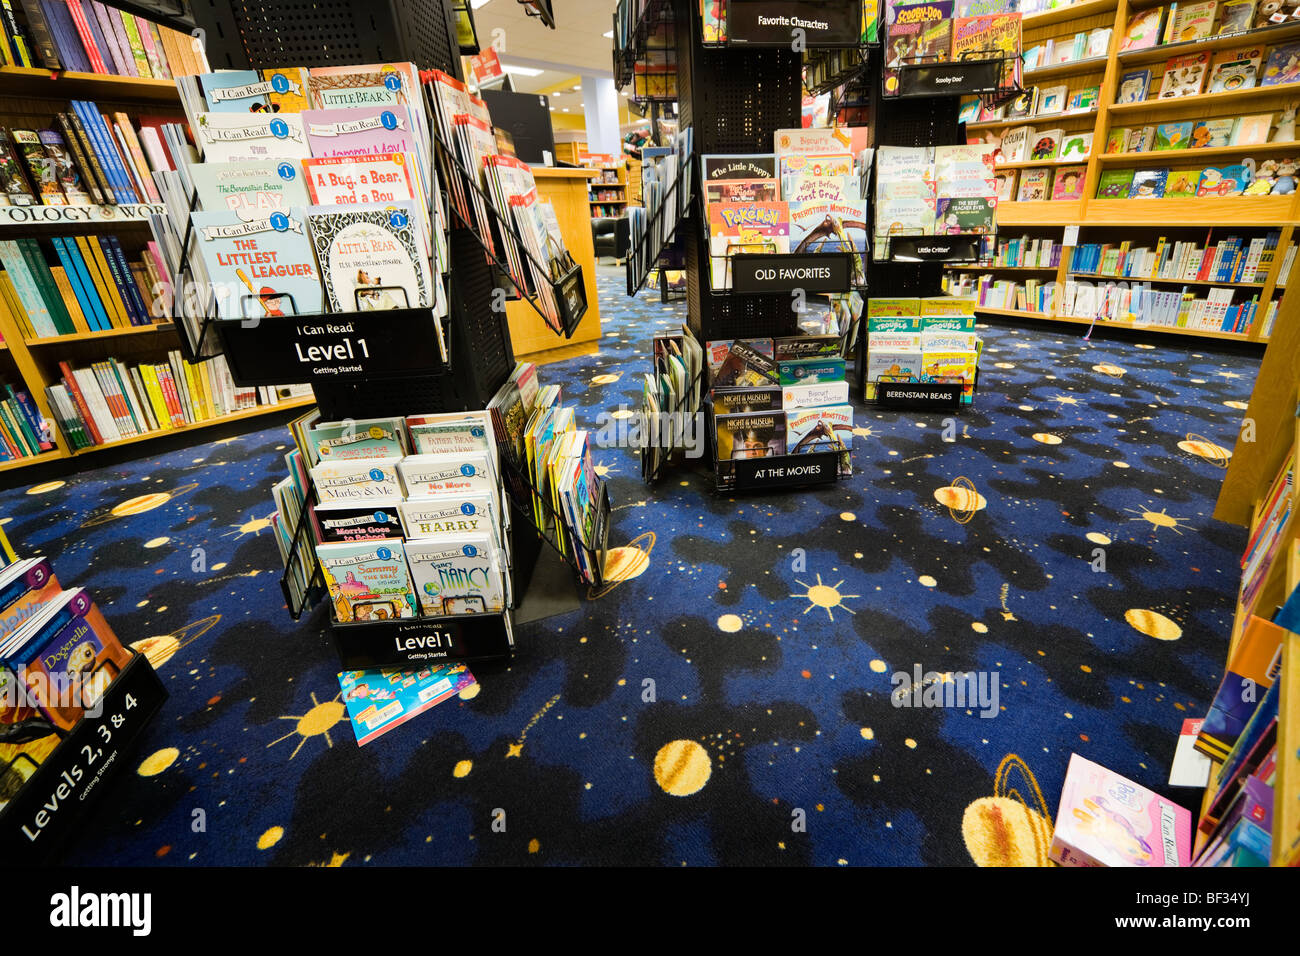 Levels 1 2 3 4 reading books in the children's corner of Borders bookstore in Colorado Mills Denver. Carpet - Stock Image